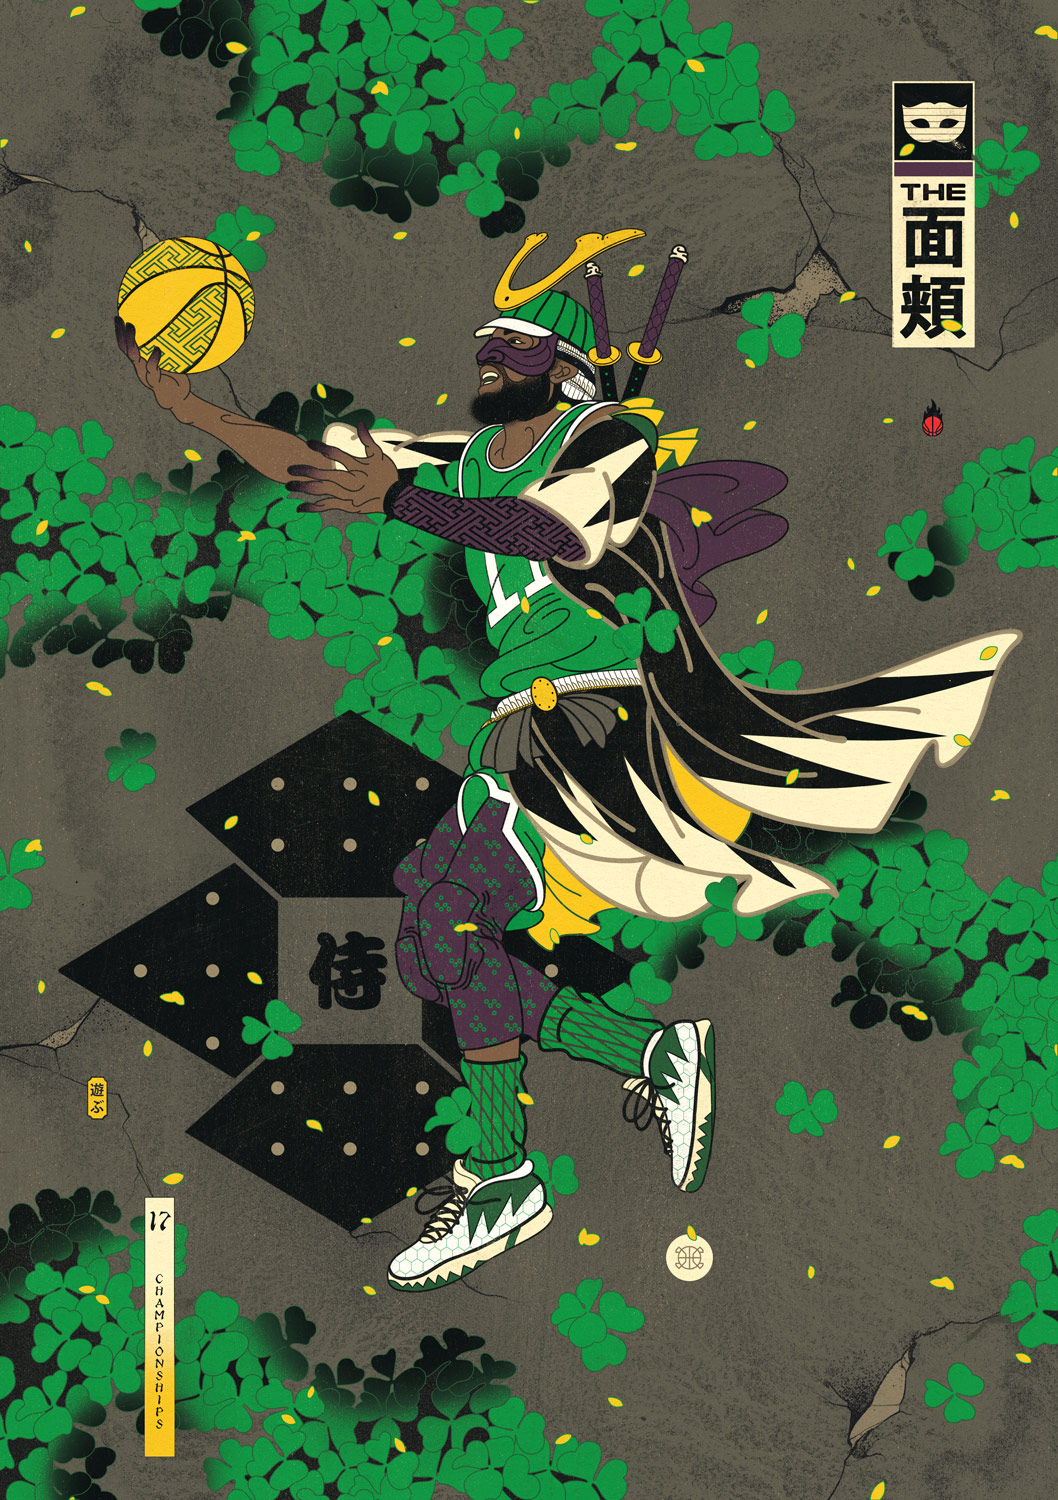 Edo Ball NBA Basketball Art - Samurai Kyrie, The Mask.